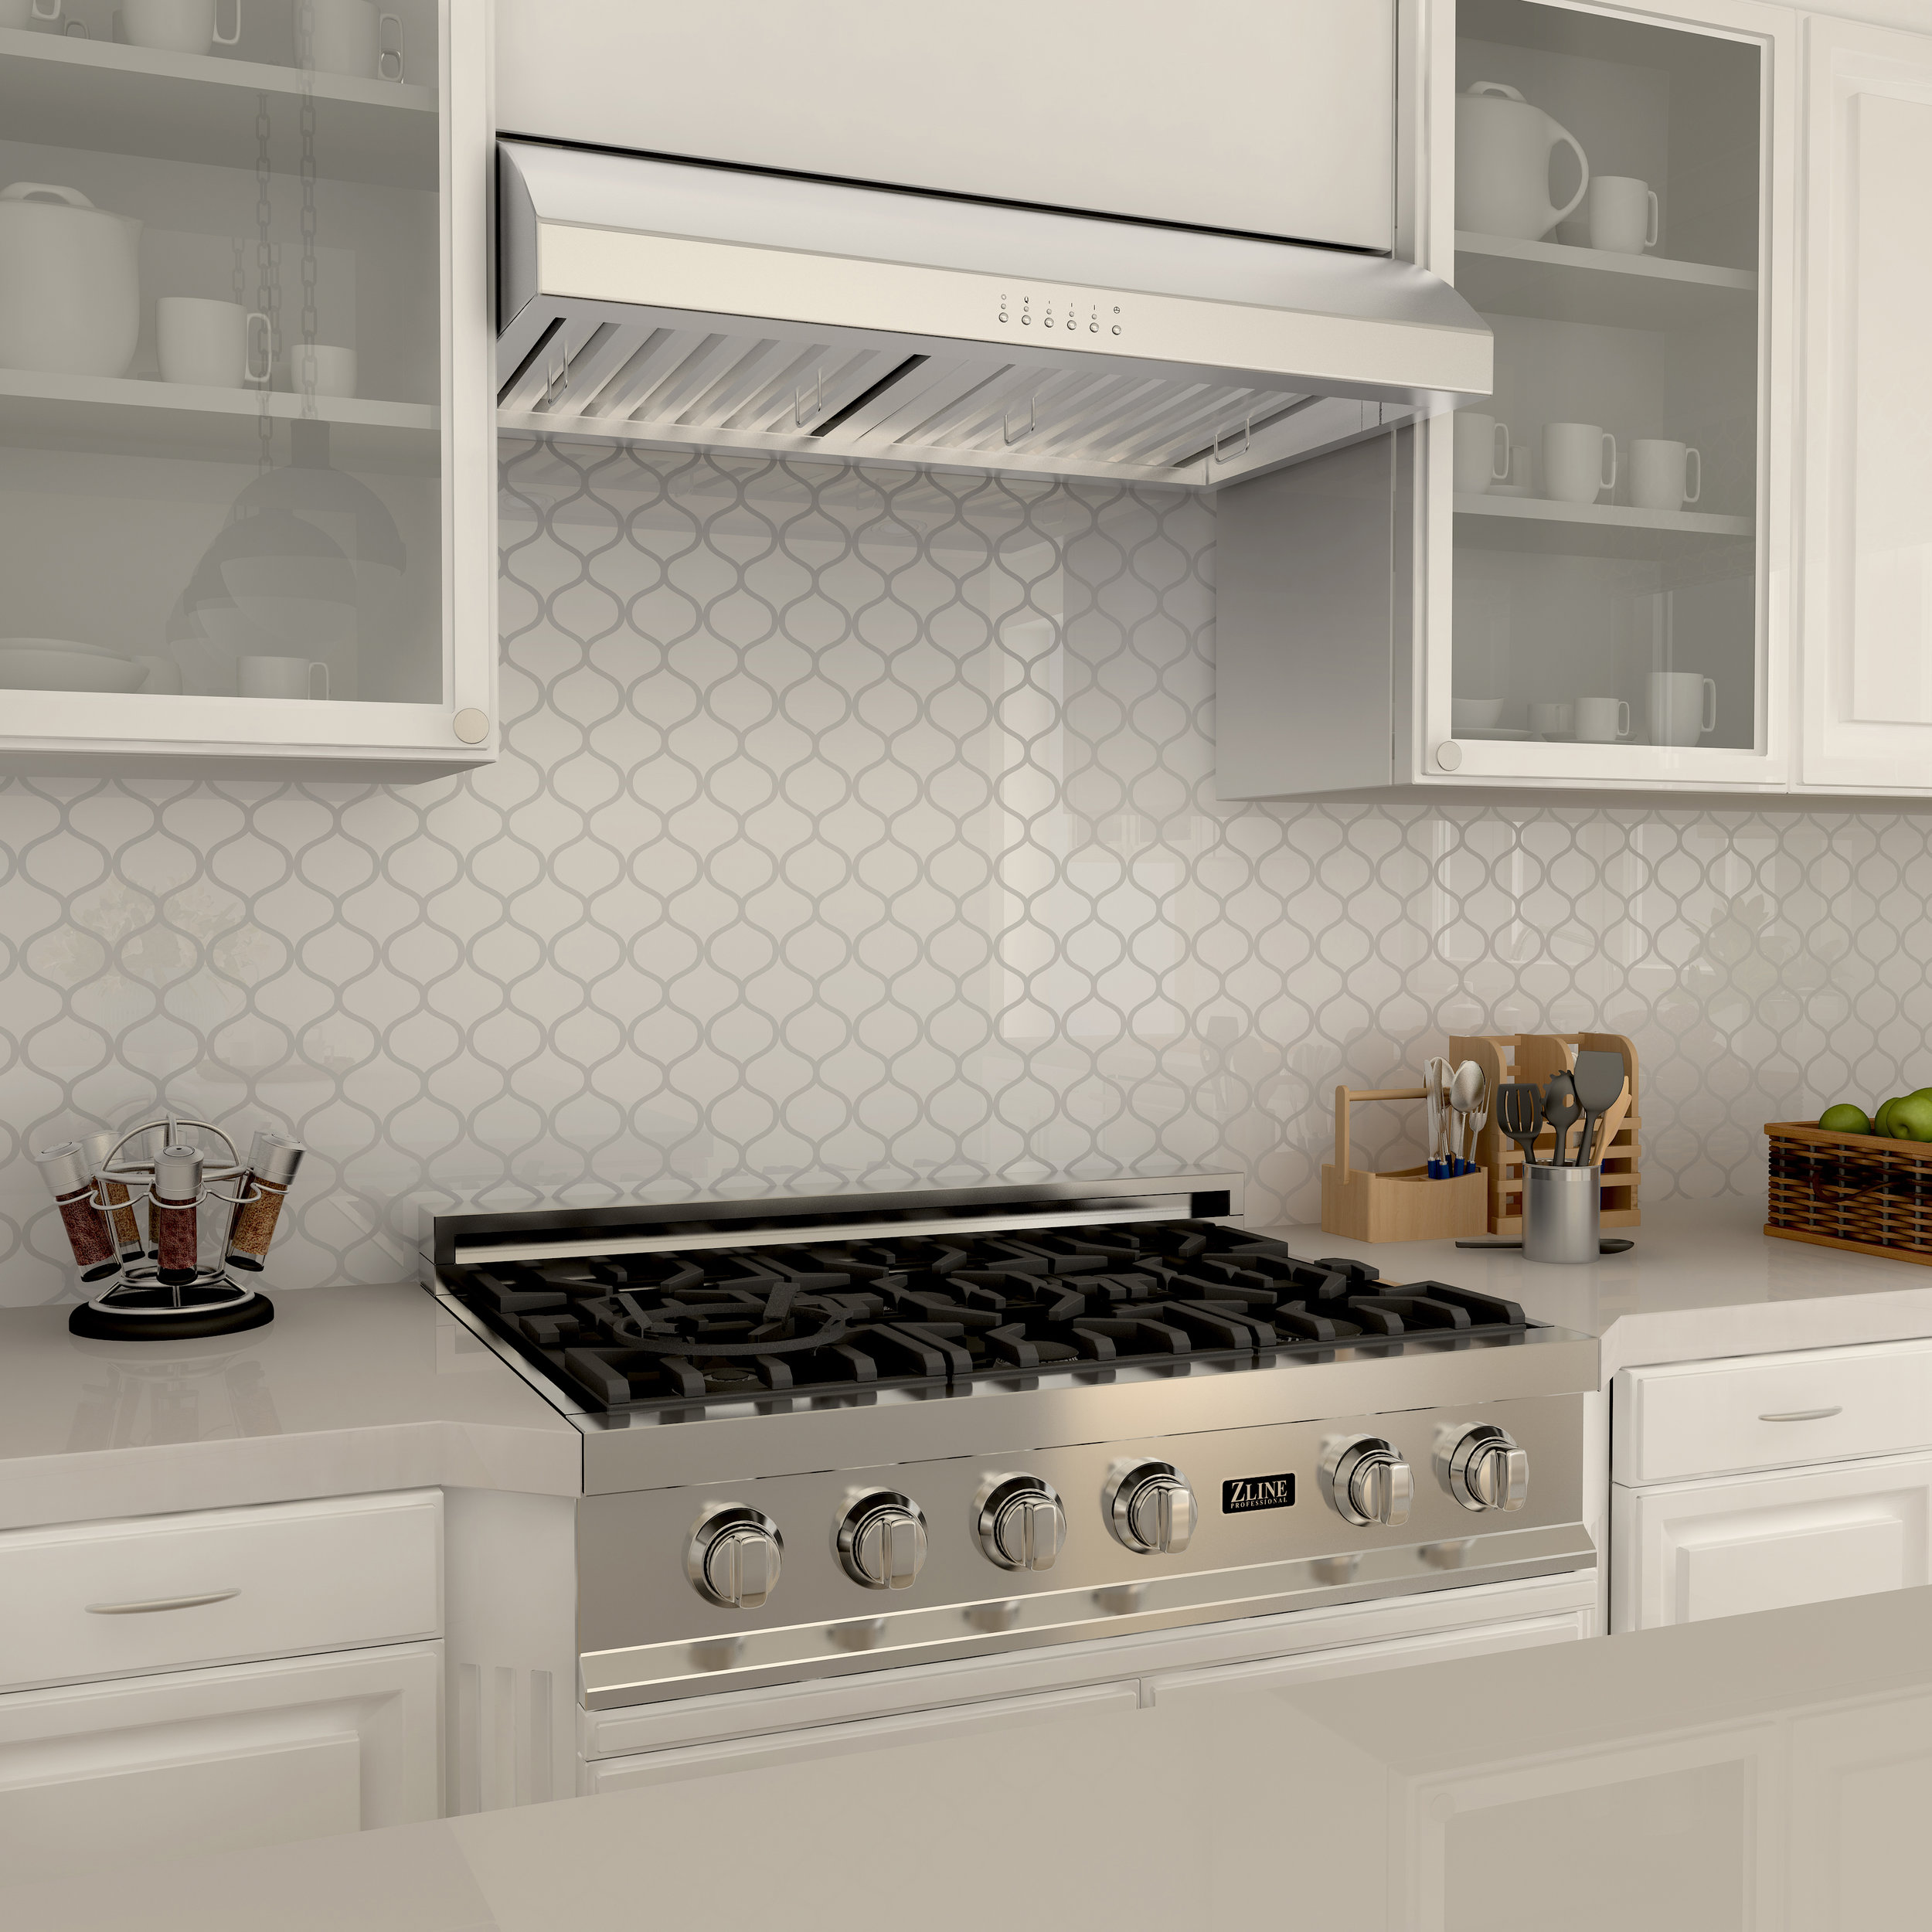 zline-stainless-steel-under-cabinet-range-hood-627-kitchen-updated-3.jpg